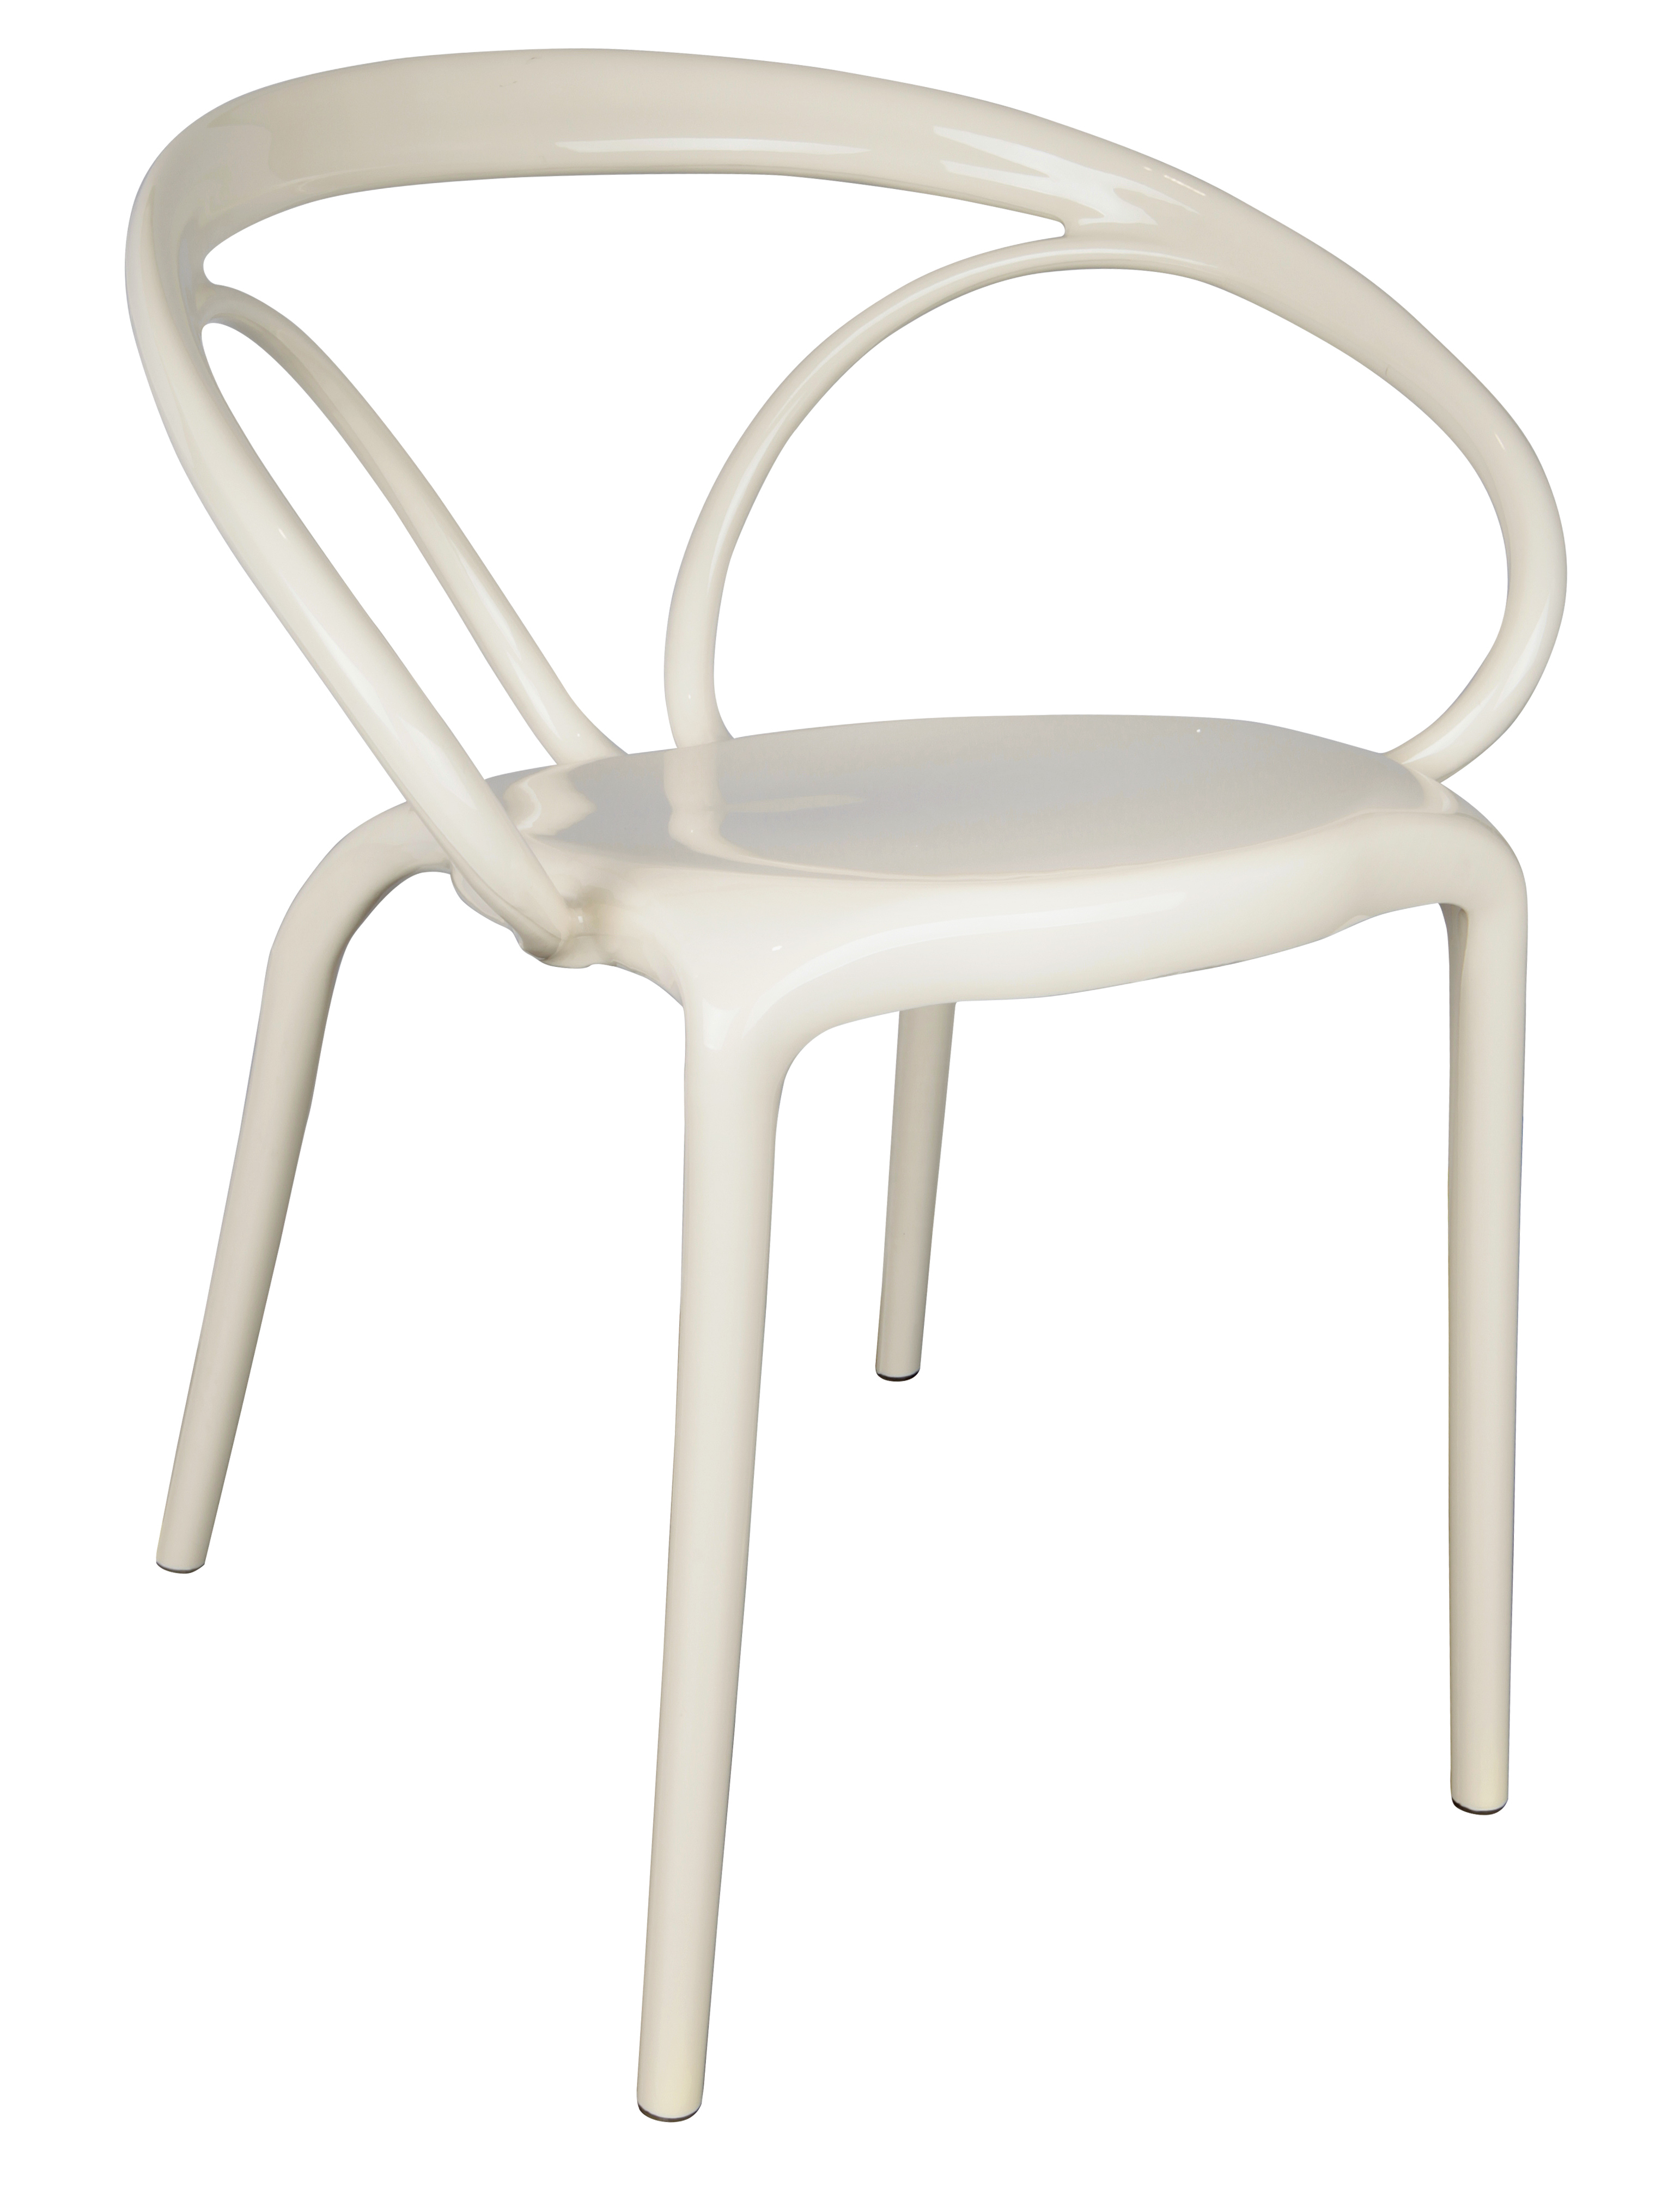 EVD MS.171 APC Elegance Polycarbonate Chair   Hotel Restaurant Cafe  Furniture Turkey